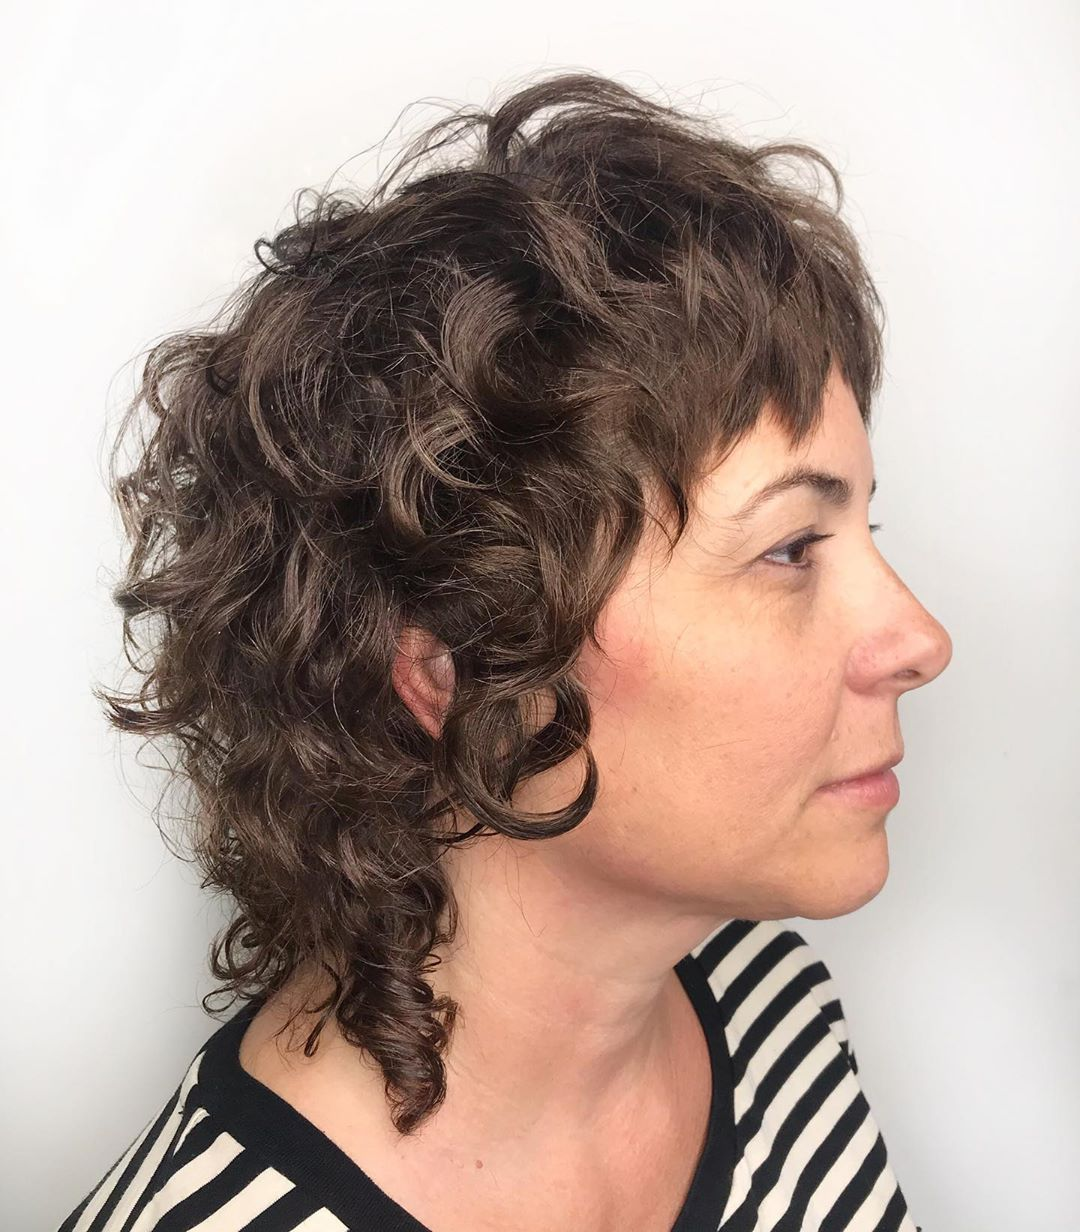 Short Curled Shag with a Cropped Bang